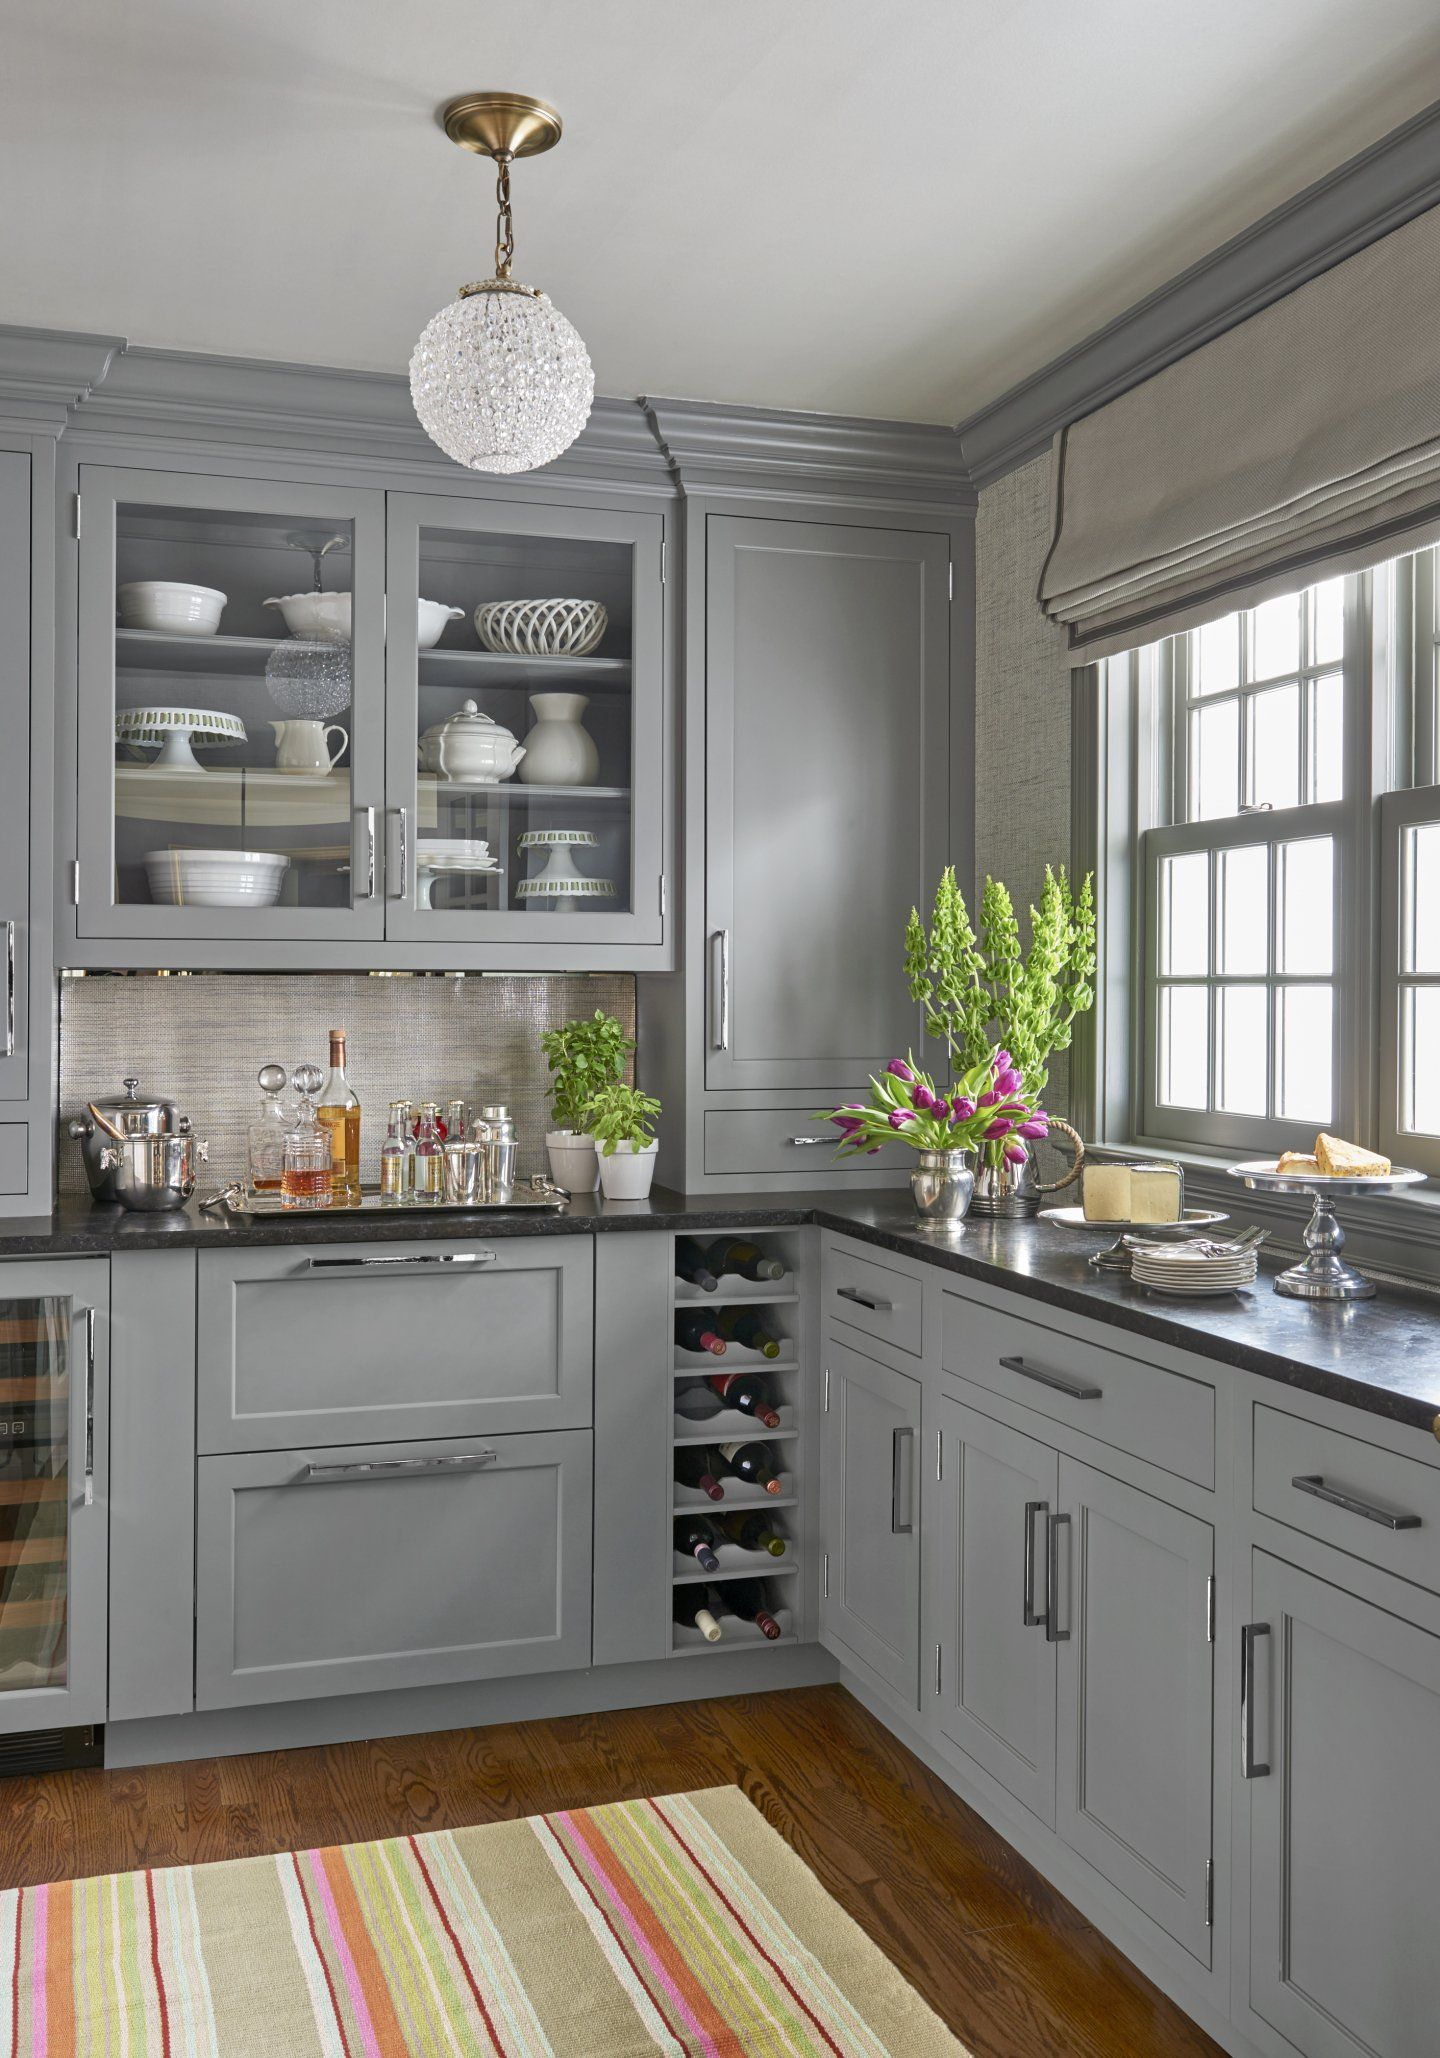 A first class butlers pantry boasts leatherized black granite countertops silvery grasscloth wallpaper and a sparkling ceiling fixture